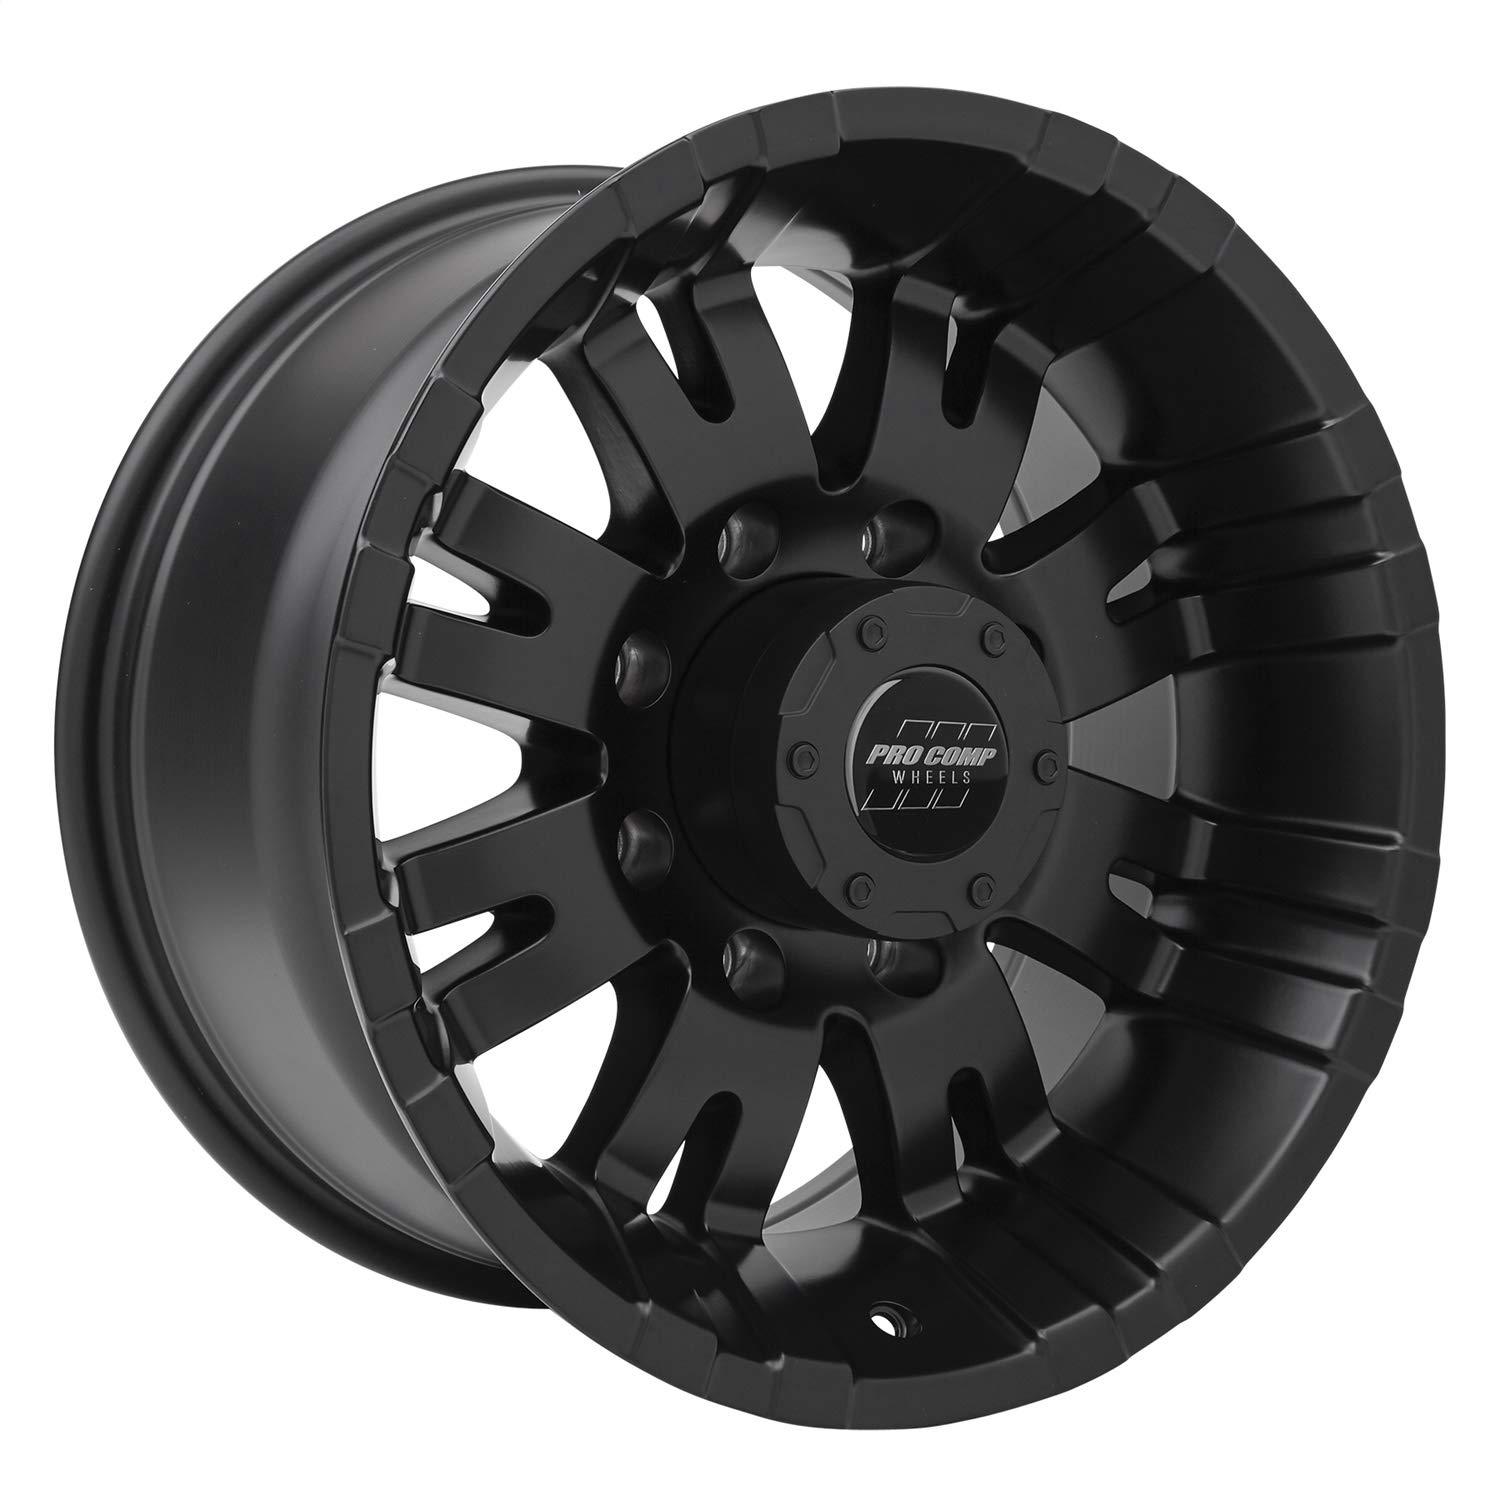 Pro Comp Alloys Series 01 Wheel with Satin Black Finish 18 x 9.5 inches //8 x 165 mm, -6 mm Offset